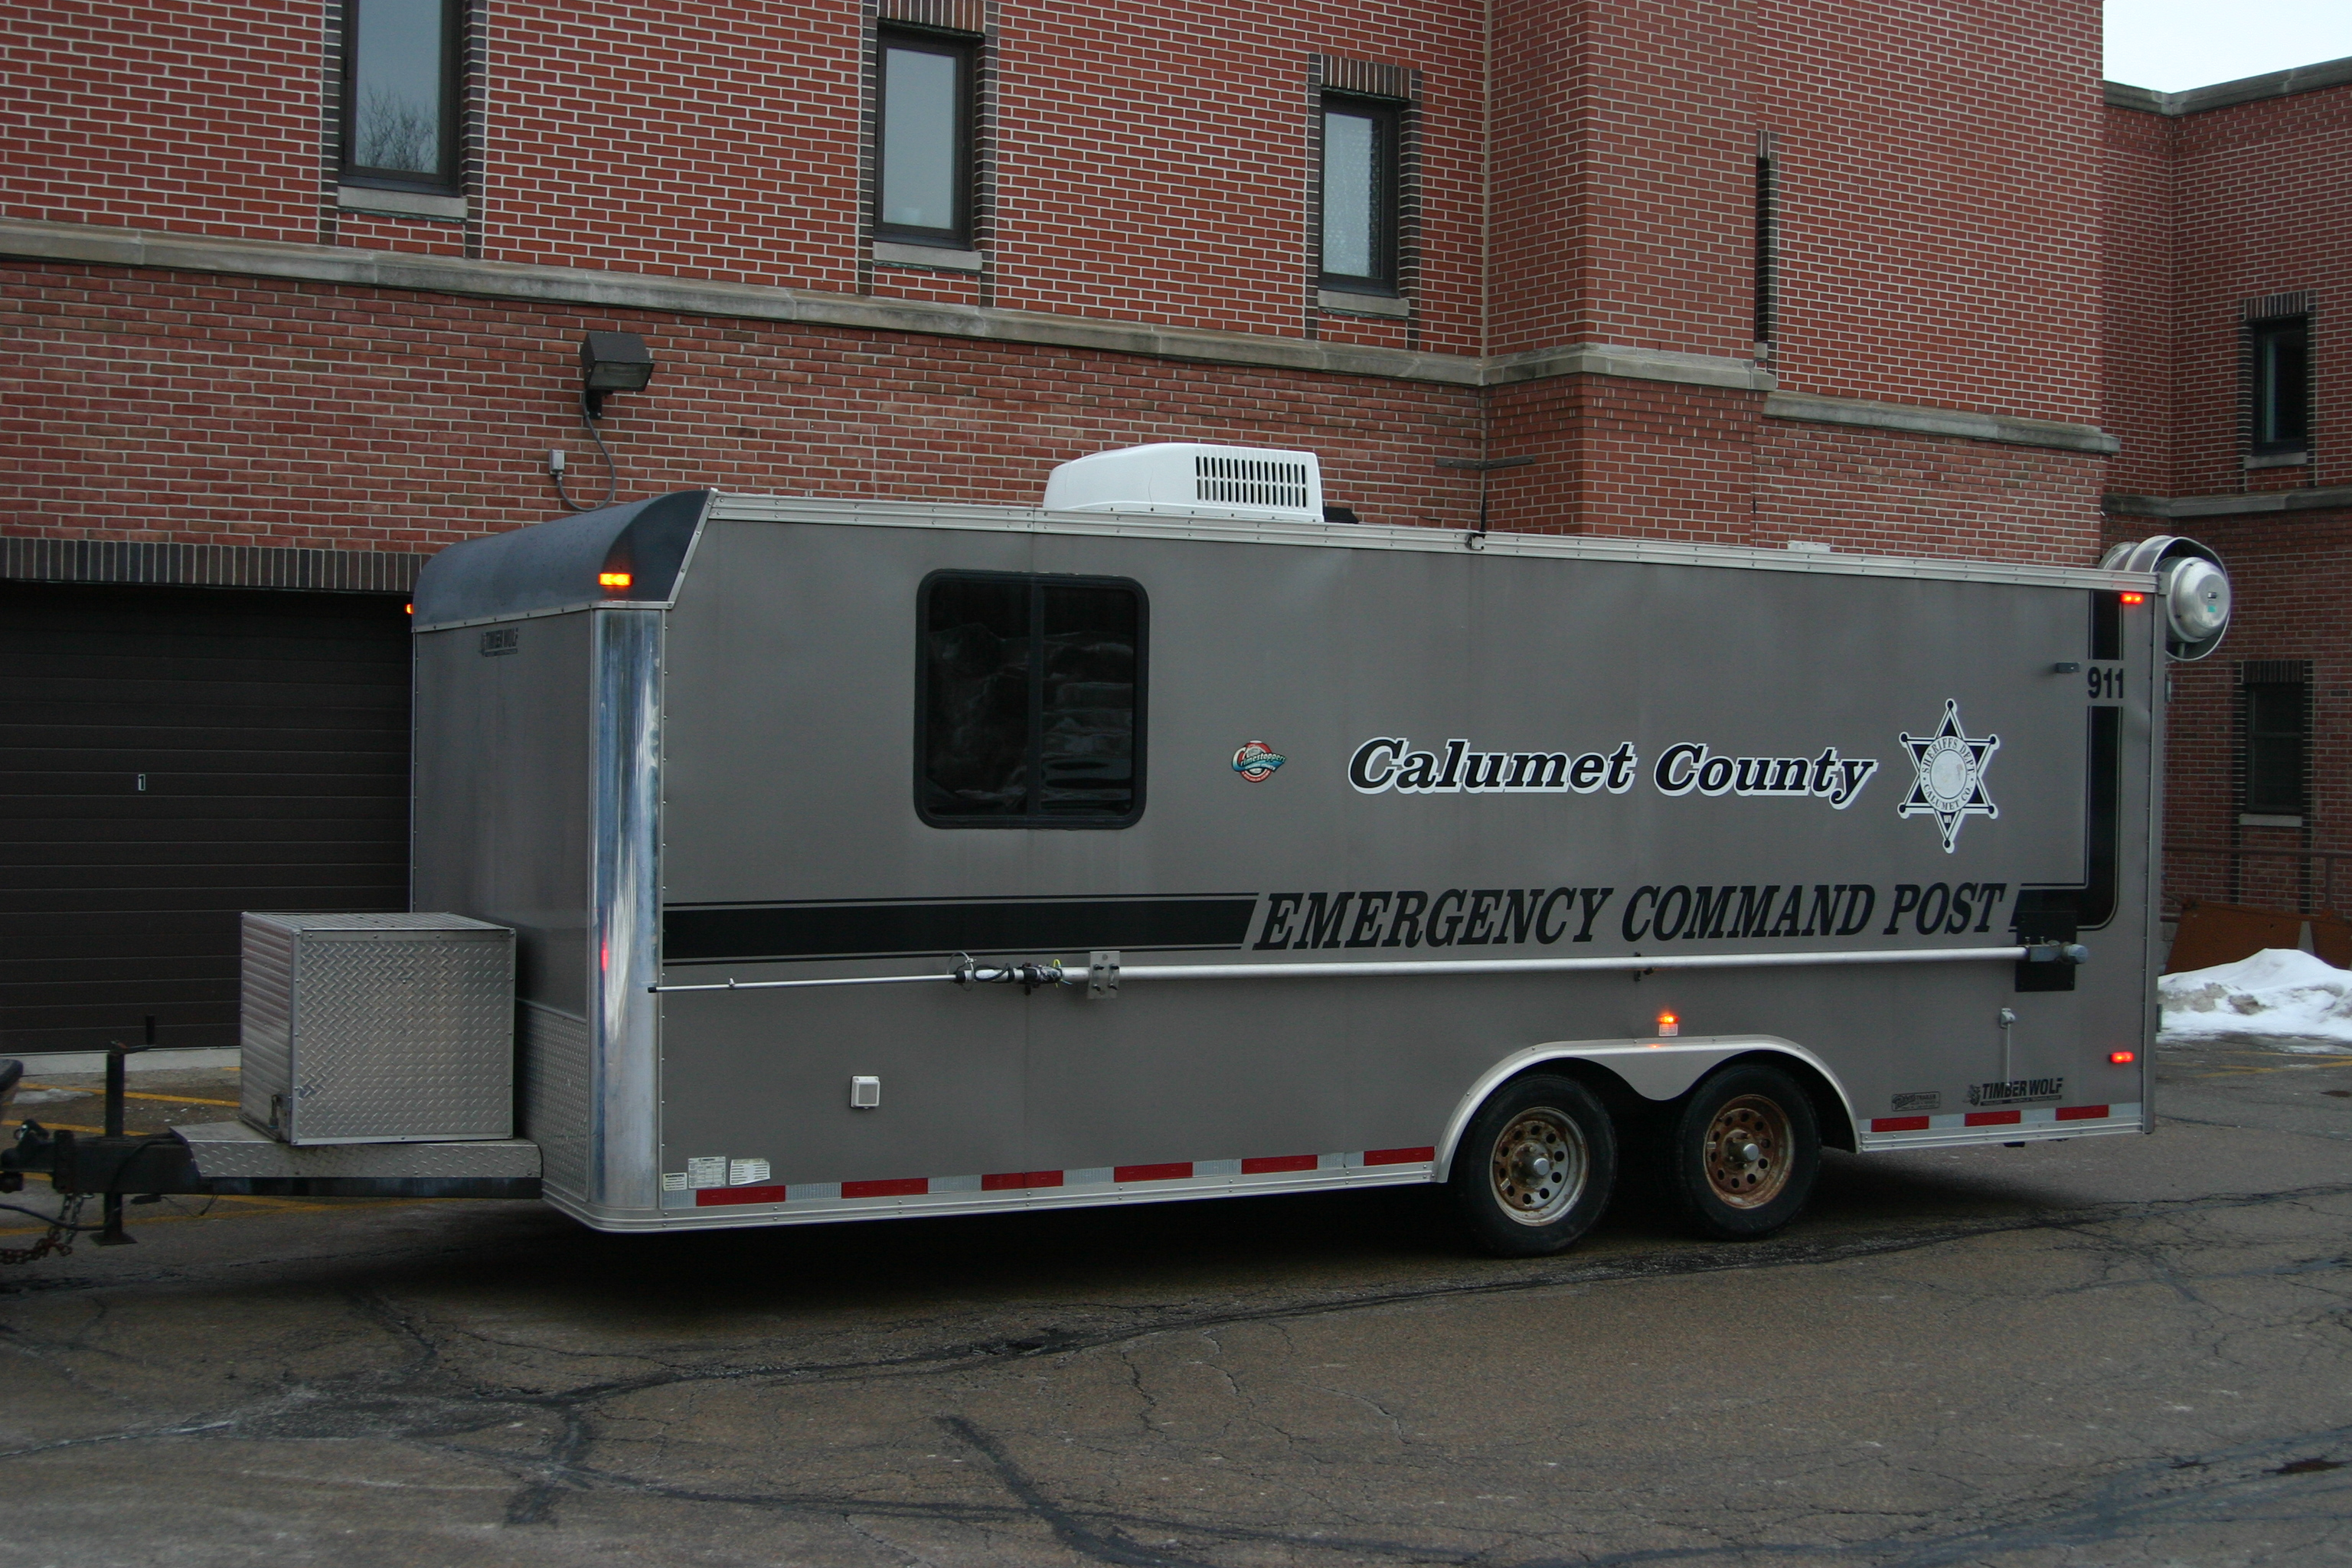 Calumet County Emergency Command Post Trailer